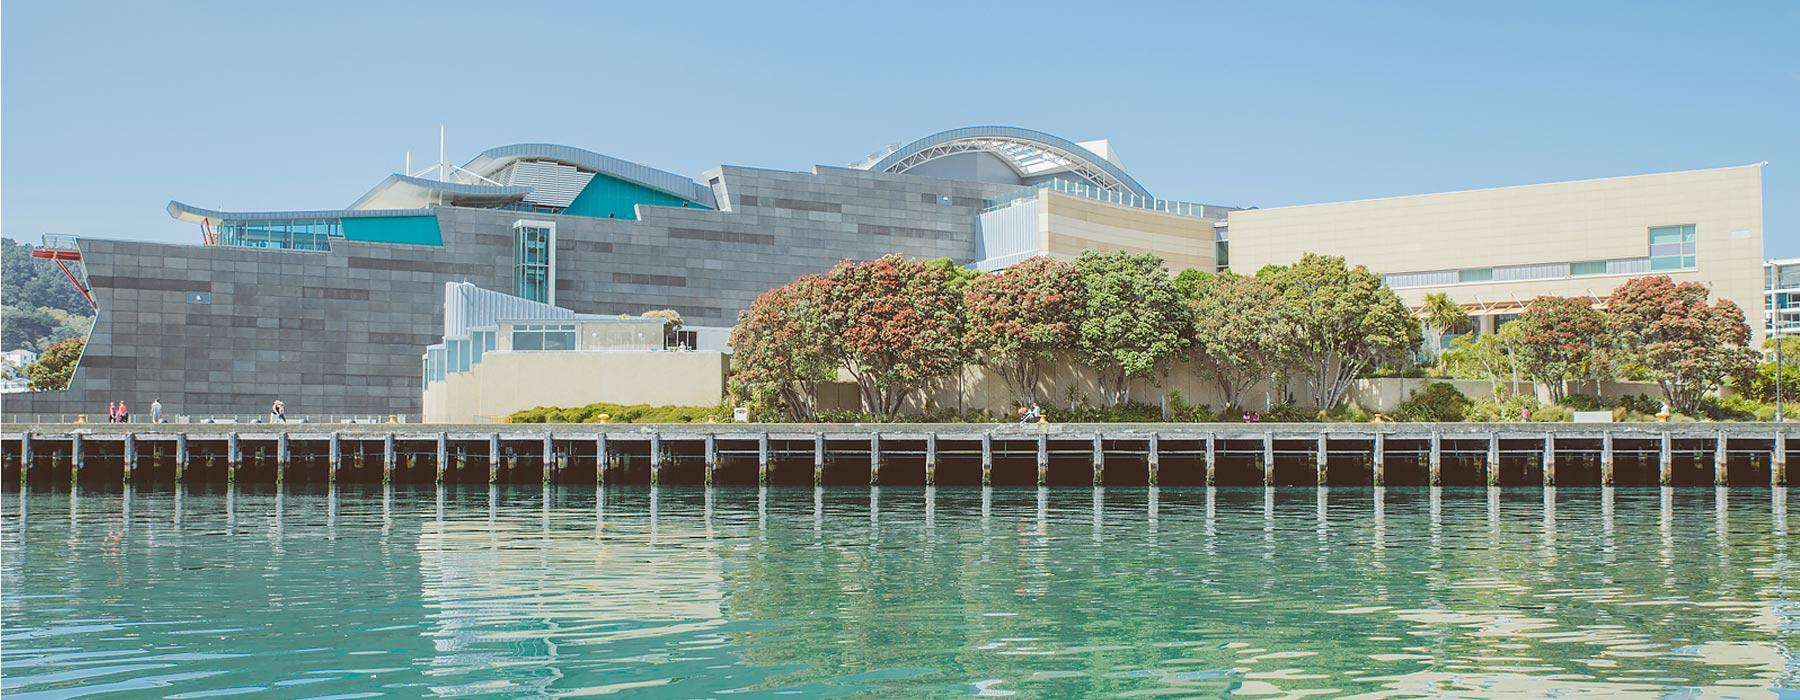 Te Papa from the water. ©Te Papa